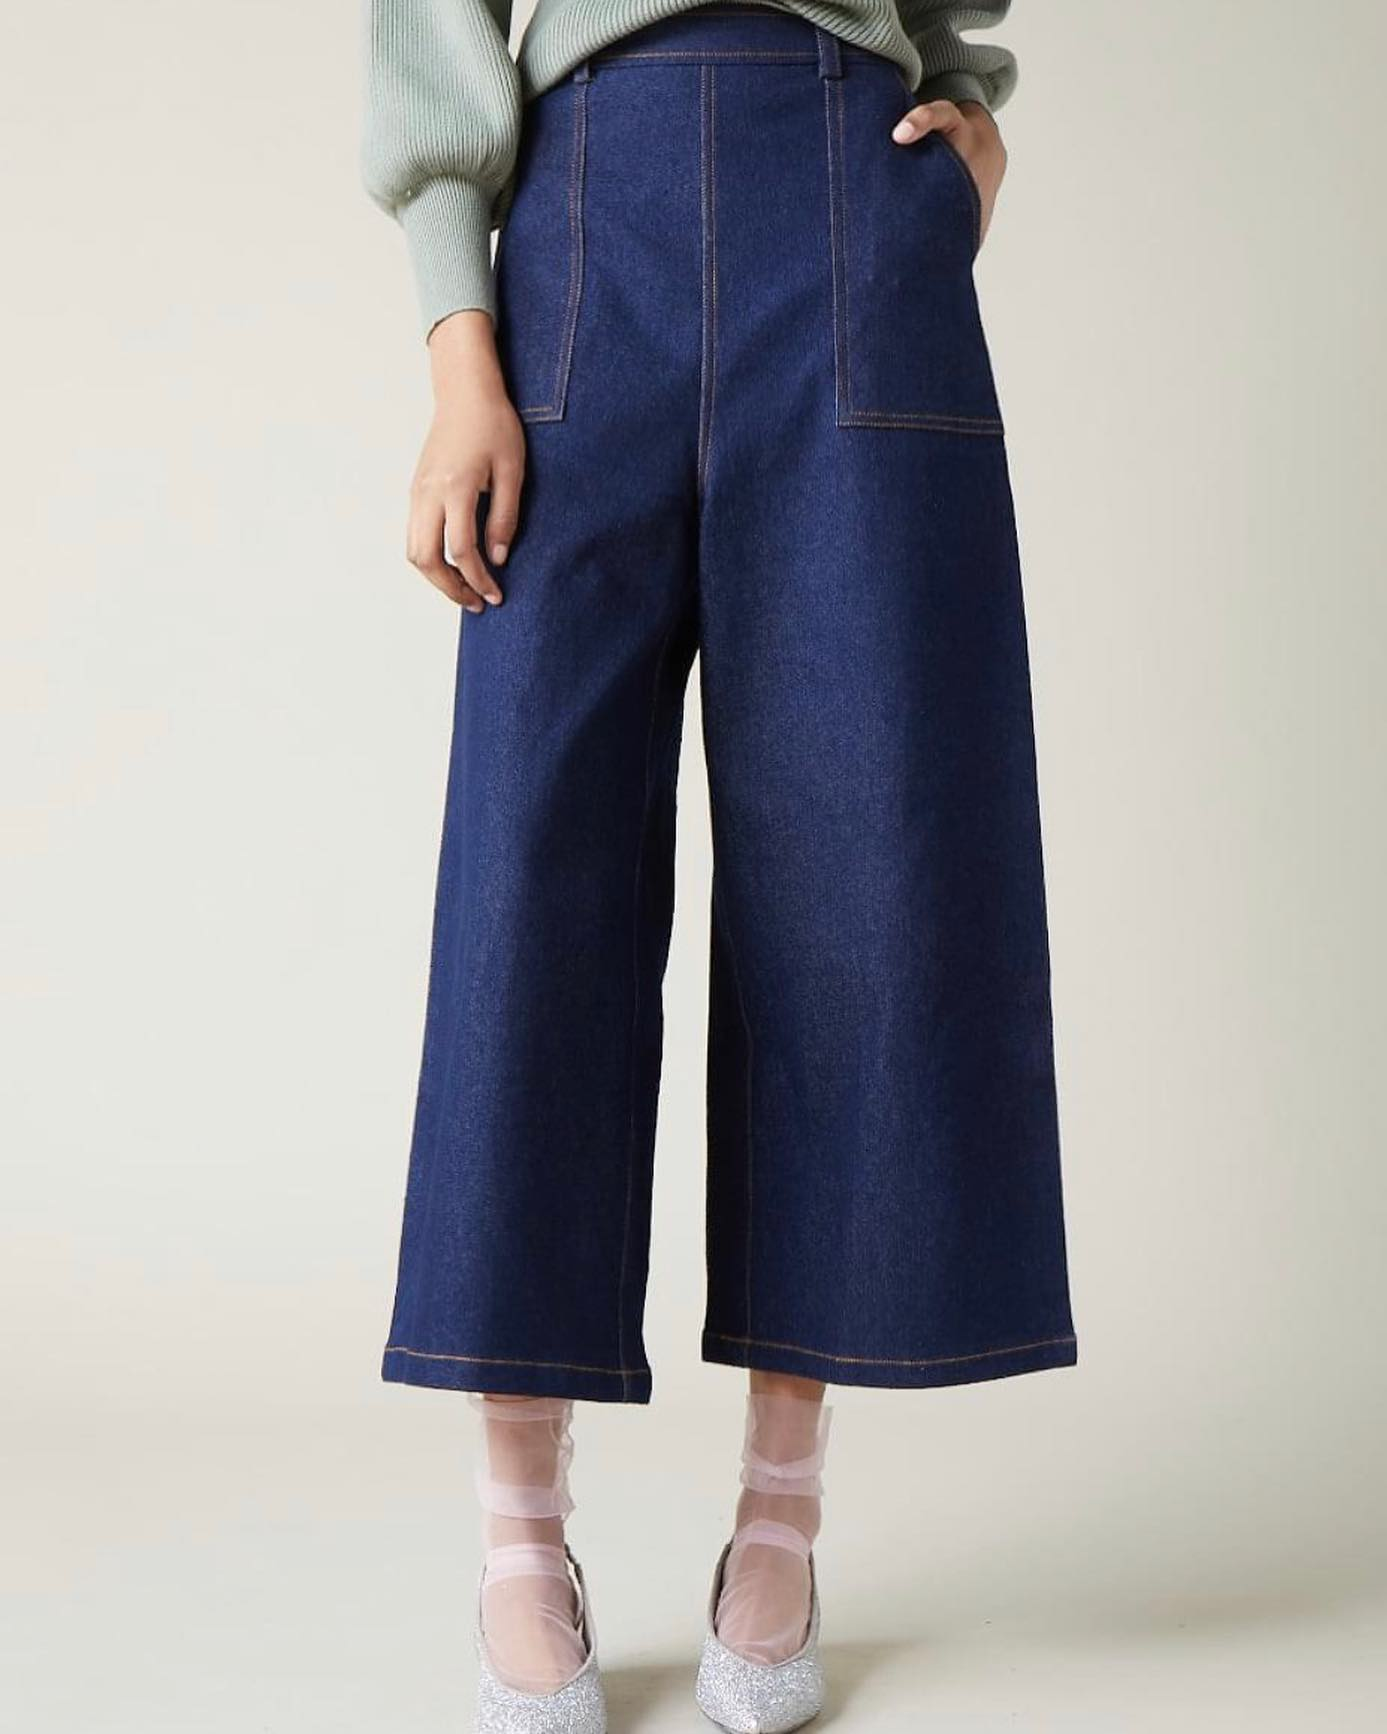 Bumble Denim Pant